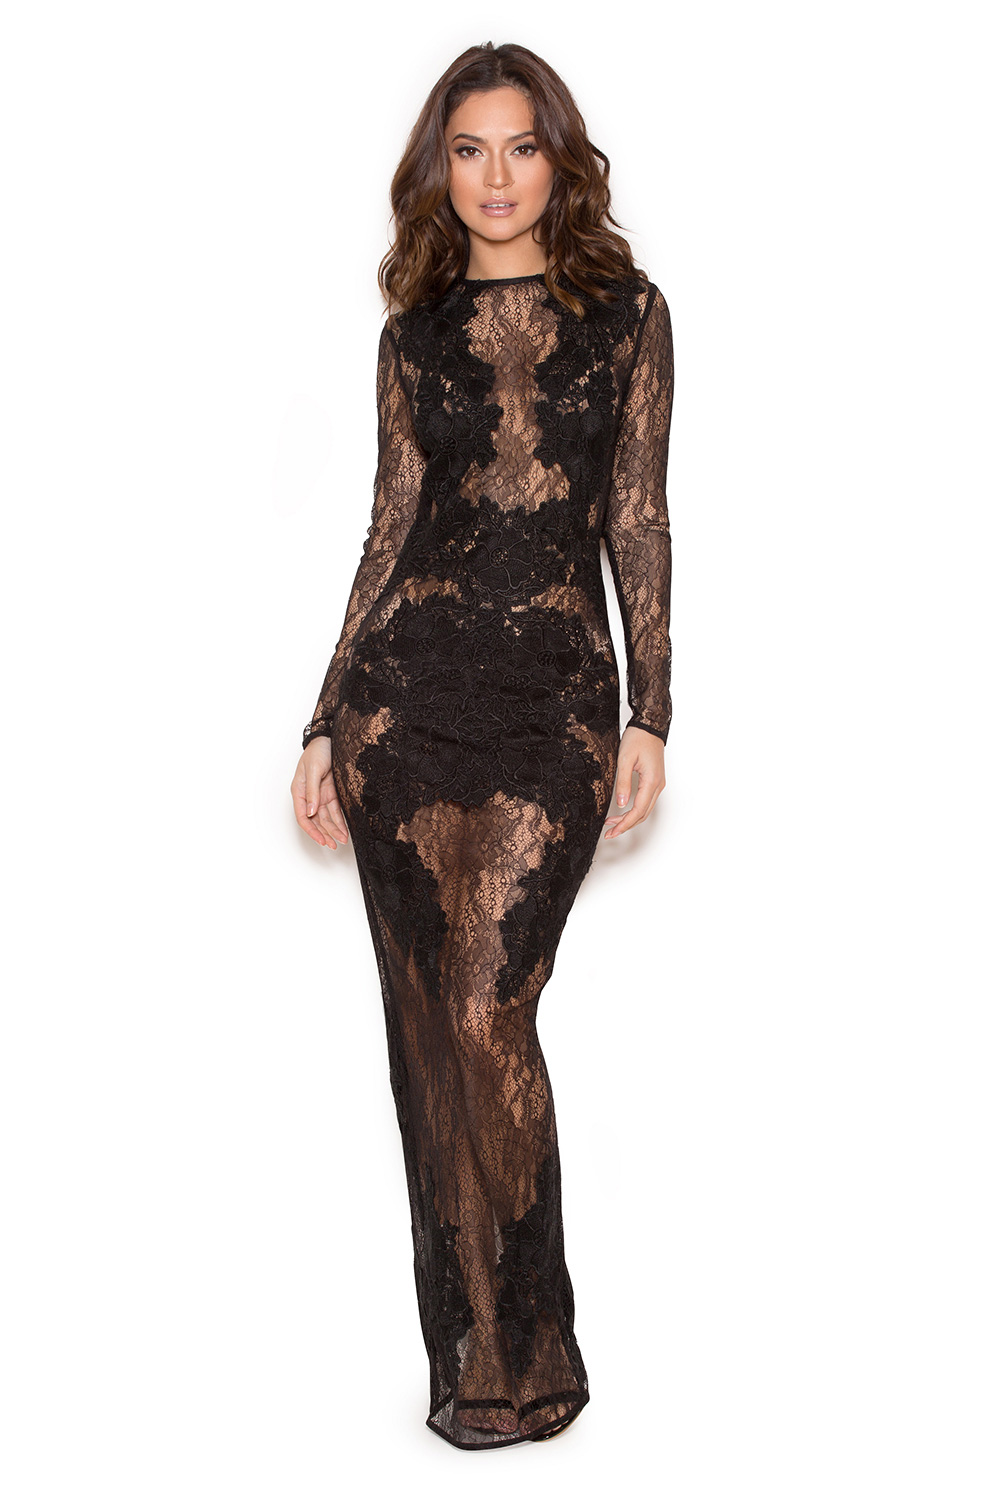 Lulus Exclusive! Beauty and grace abound with the Lulus Amazing Lace Black Lace Maxi Dress! Sheer mesh shapes a rounded neckline atop a darted, sleeveless bodice with a sexy plunging silhouette. Fitted waist falls into an elegant lace maxi skirt with a flaring mermaid hem. Back keyhole with top /5(33).